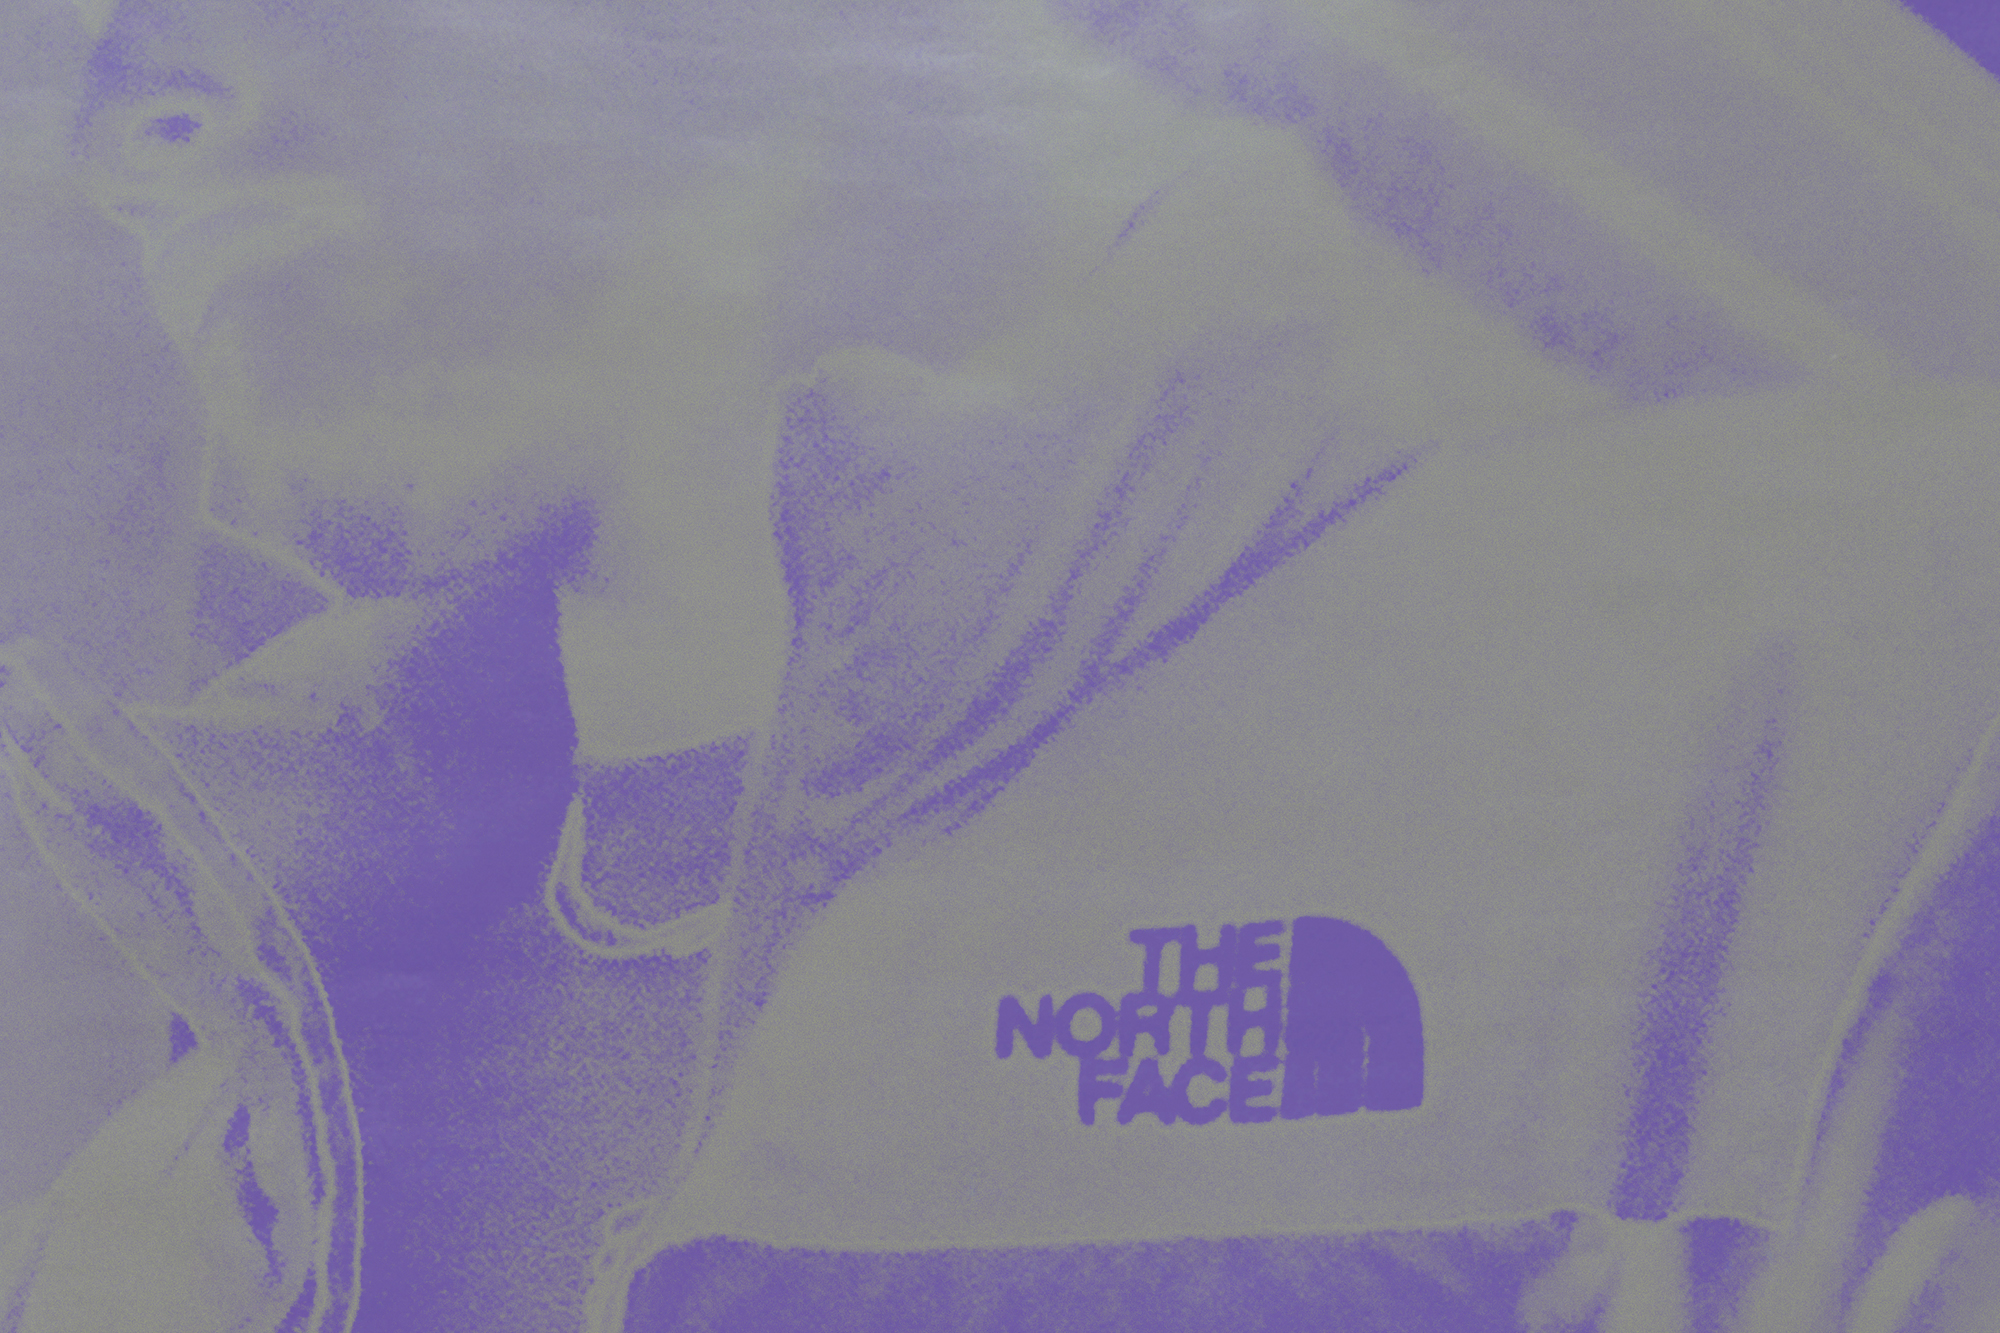 Poster for North Face x Manual Event (Close-Up), 2019